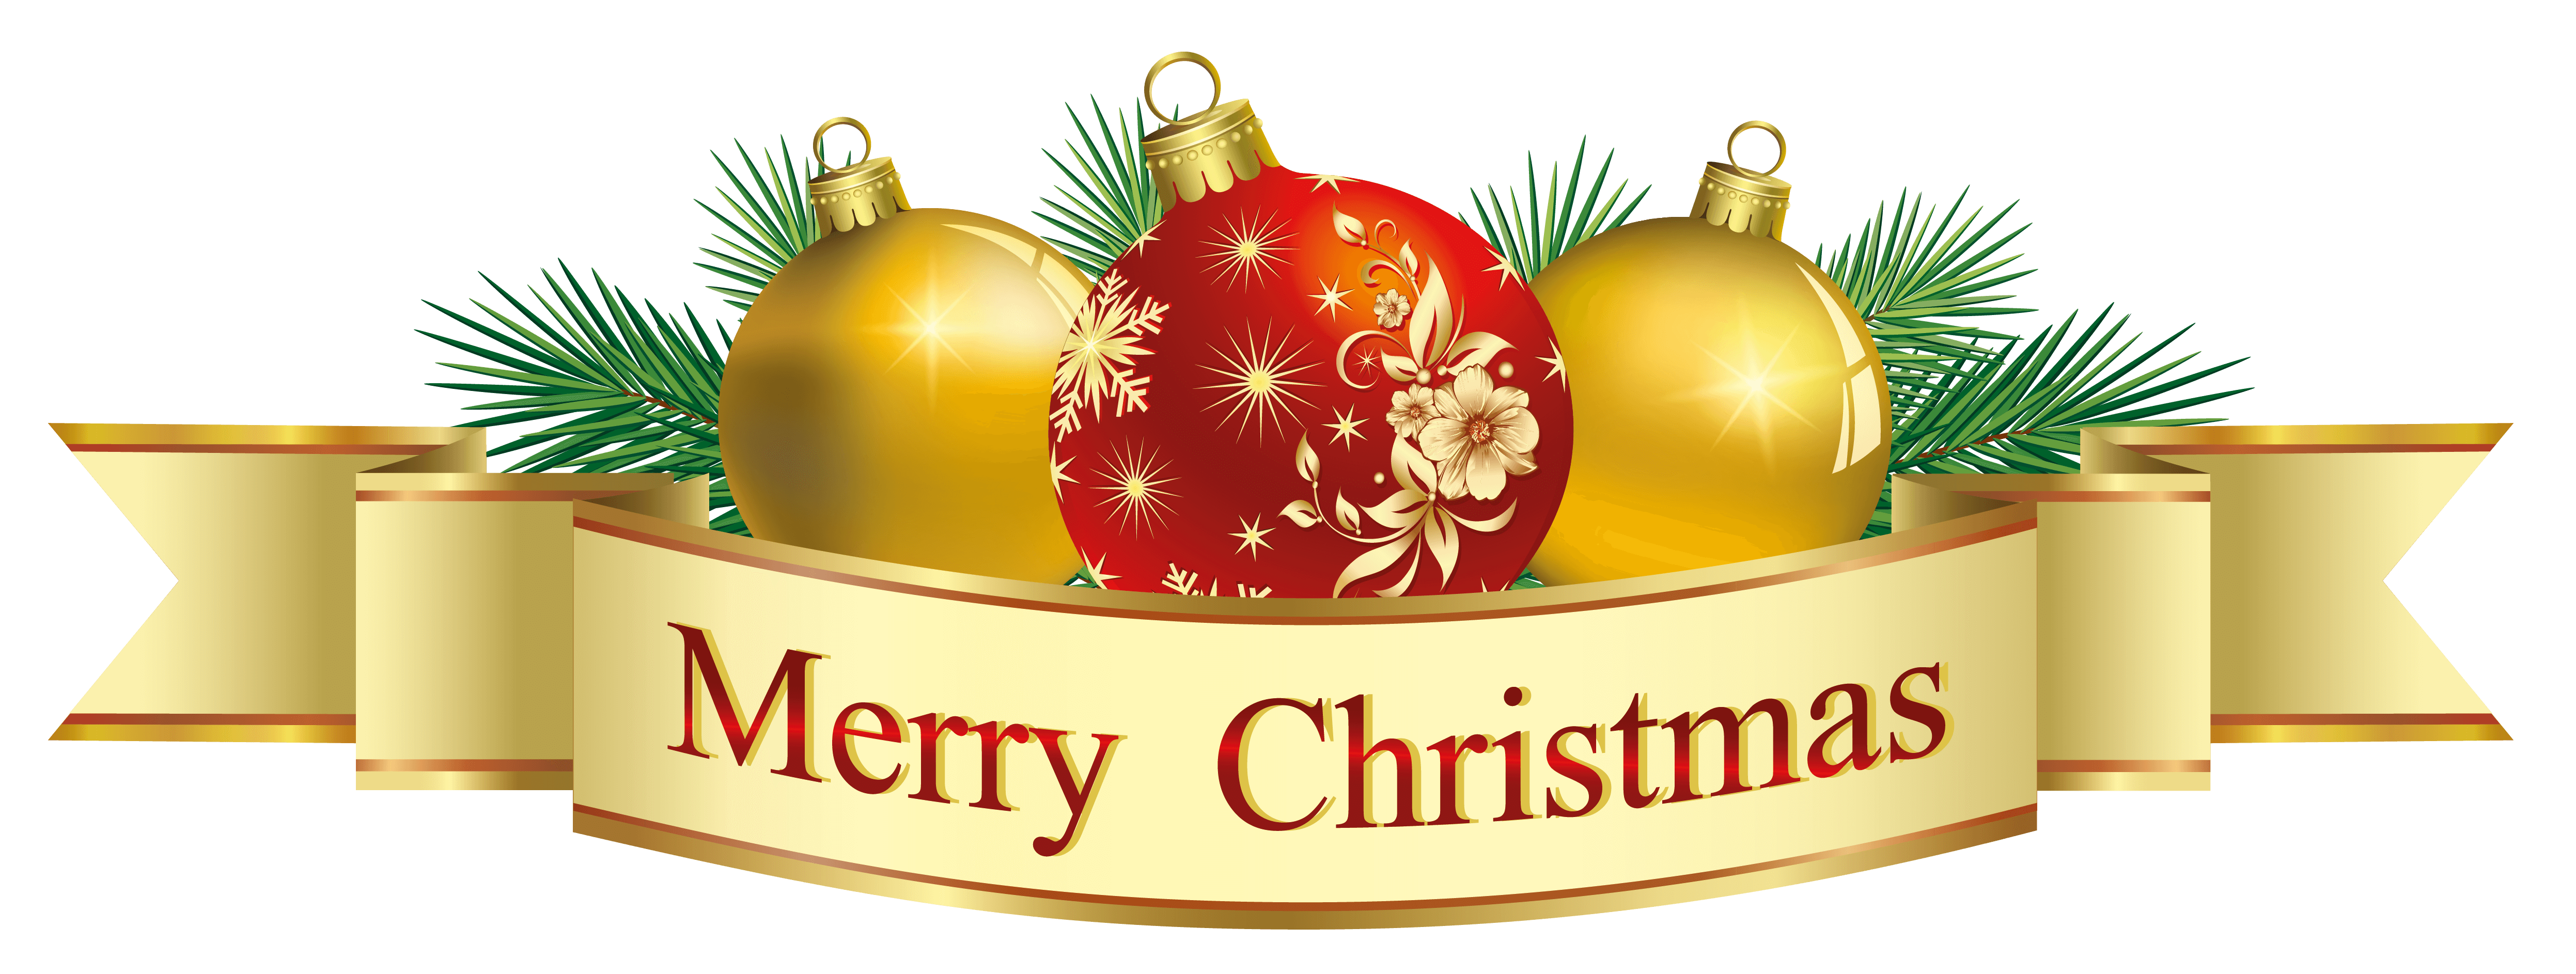 Merry christmas logo png. And happy new year